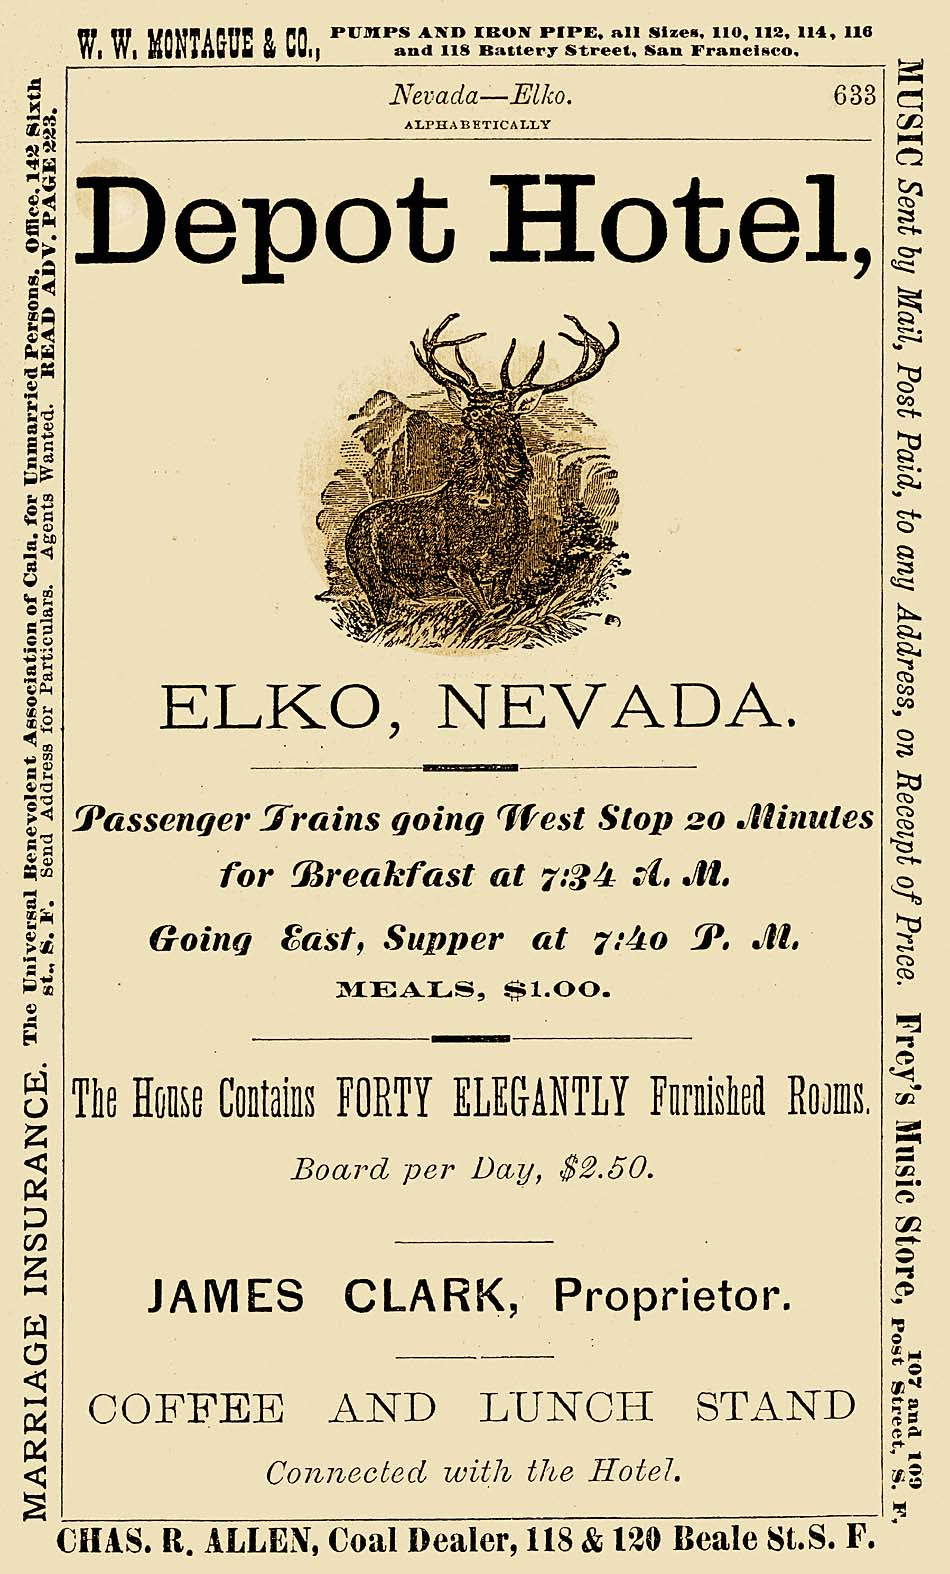 Depot Hotel Advertisement, Elko, Nevada. Courtesy of James Barkely and the Northeastern Nevada Museum.